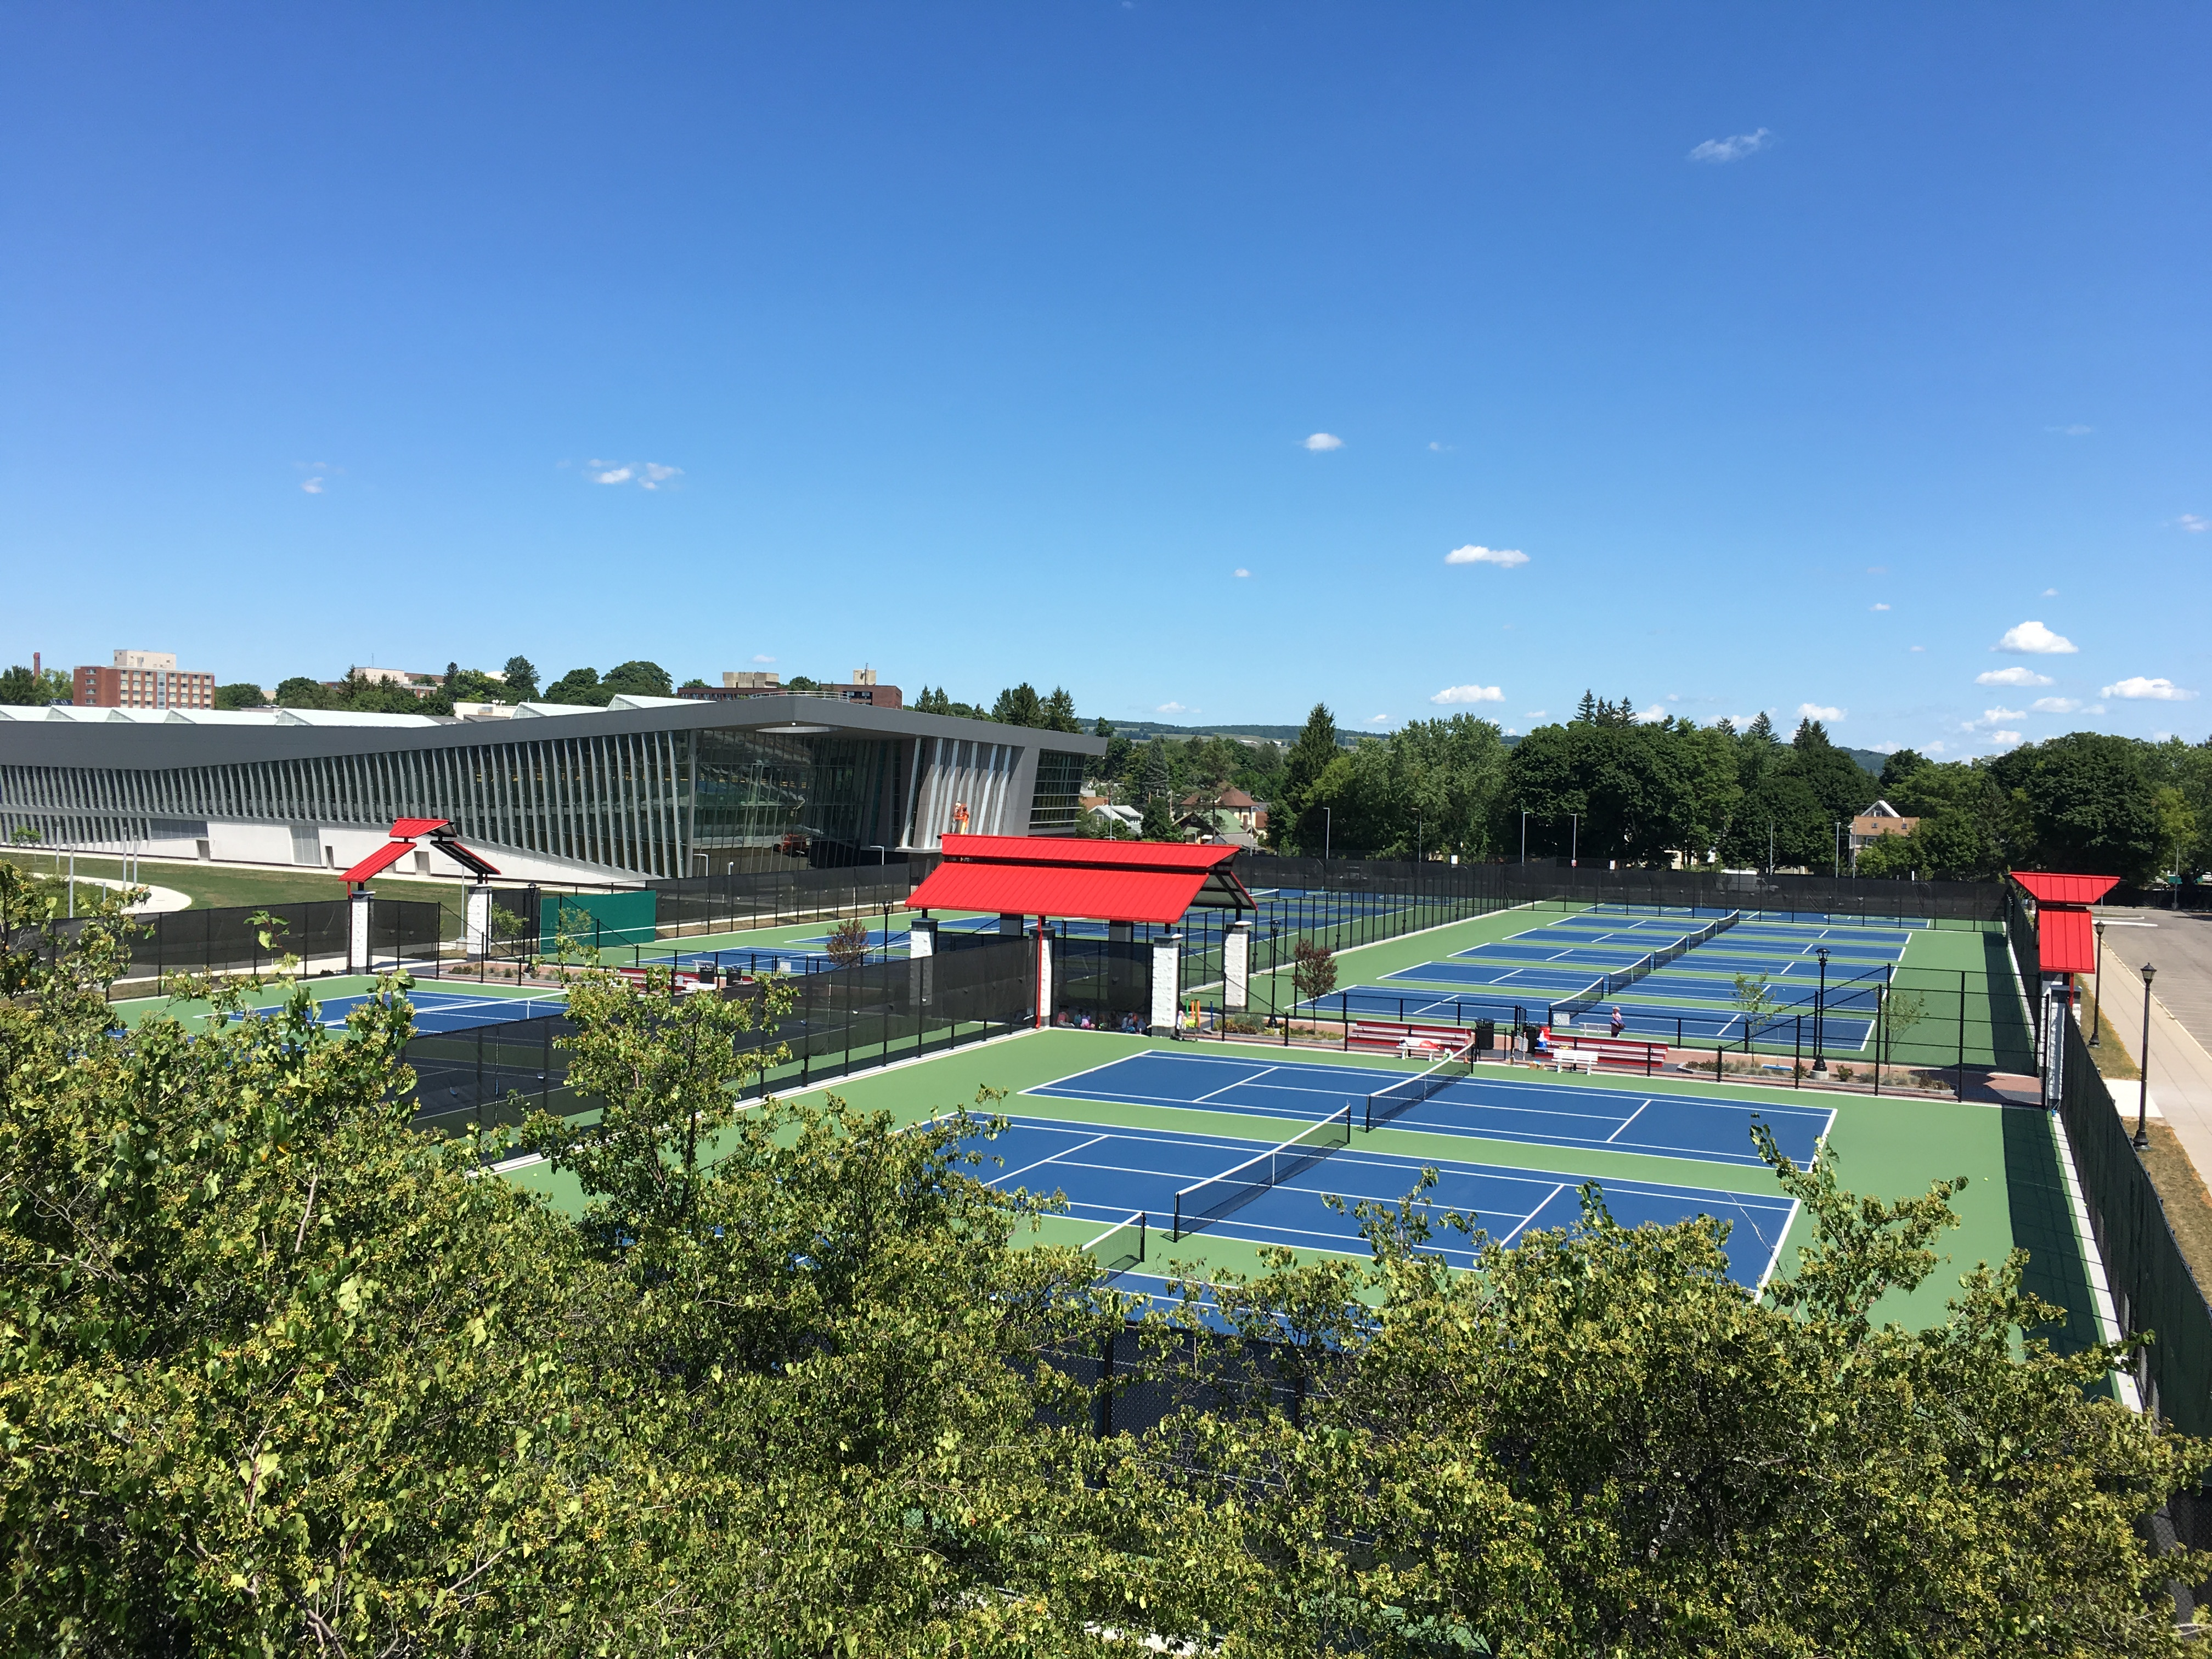 Tennis Courts and Student Life Center